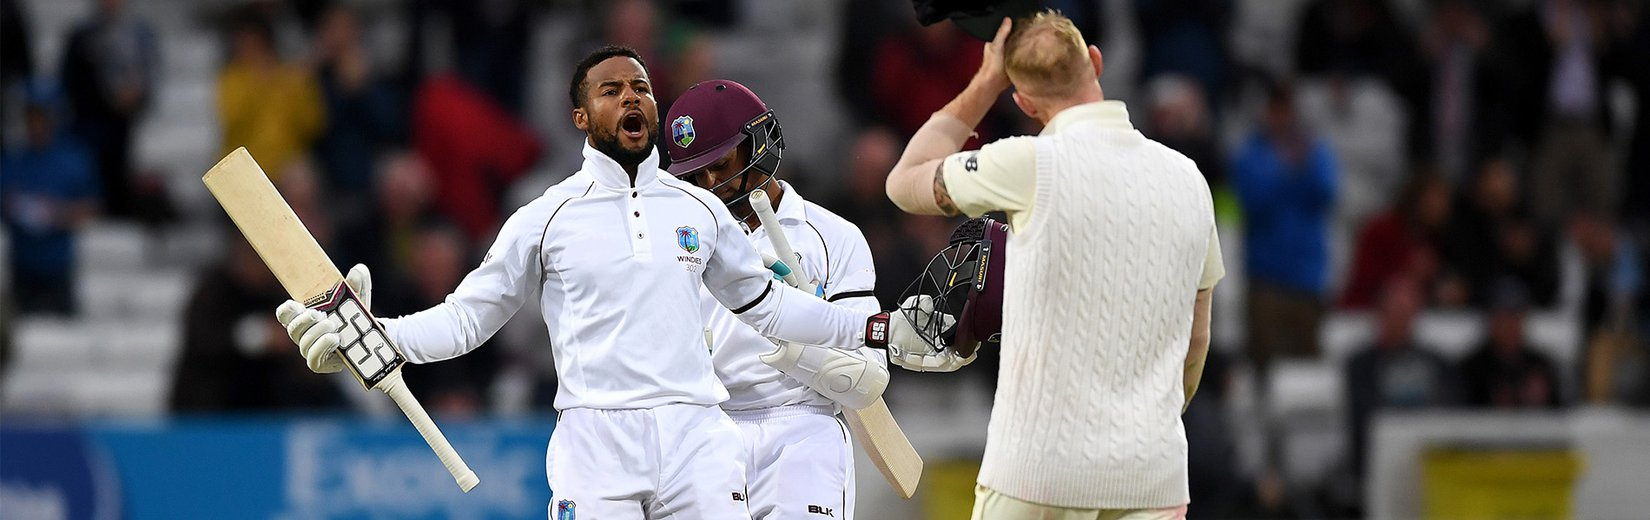 Official Tour Packages: England Tour of the West Indies 2019